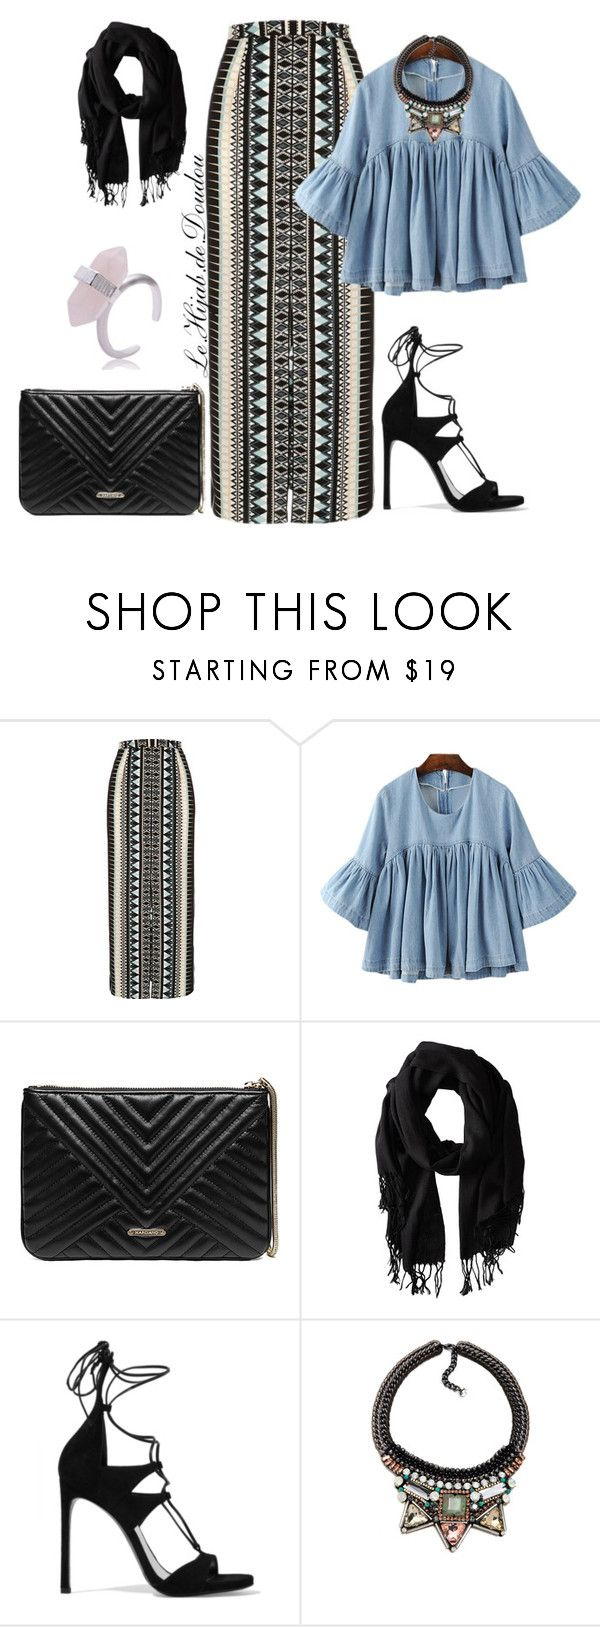 """""""Hijab Outfit"""" by le-hijab-de-doudou ❤ liked on Polyvore featuring River Island, GUESS by Marciano, Gabriella Rocha, Stuart Weitzman and Nocturne"""